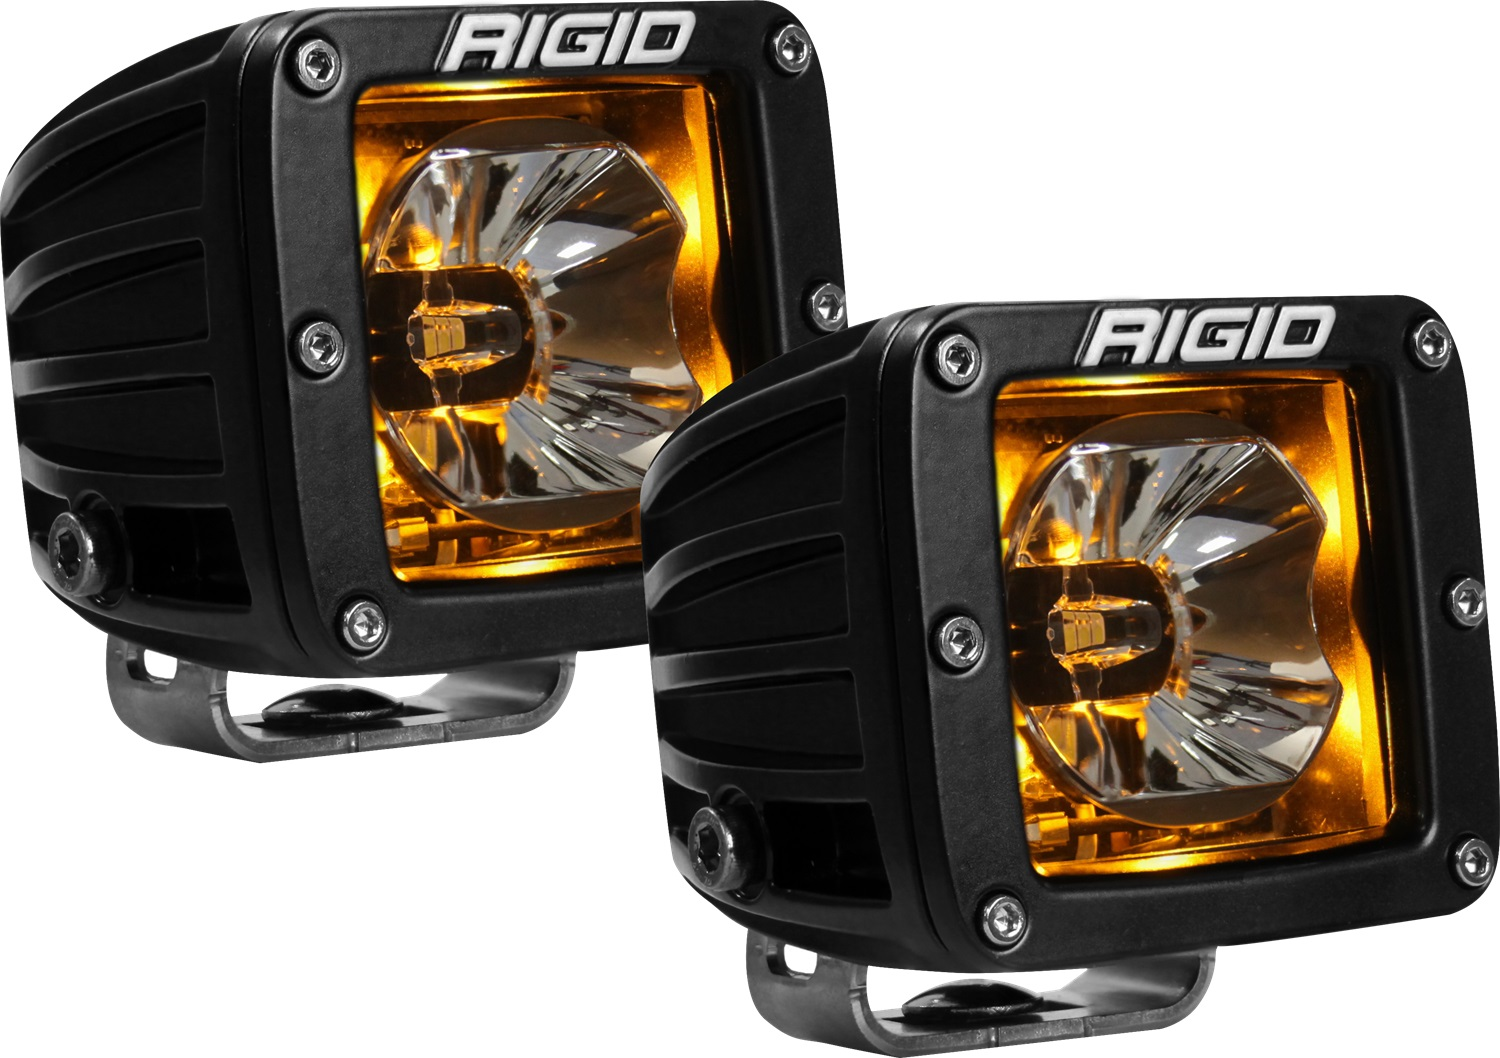 Rigid Industries 20204 Radiance Pod